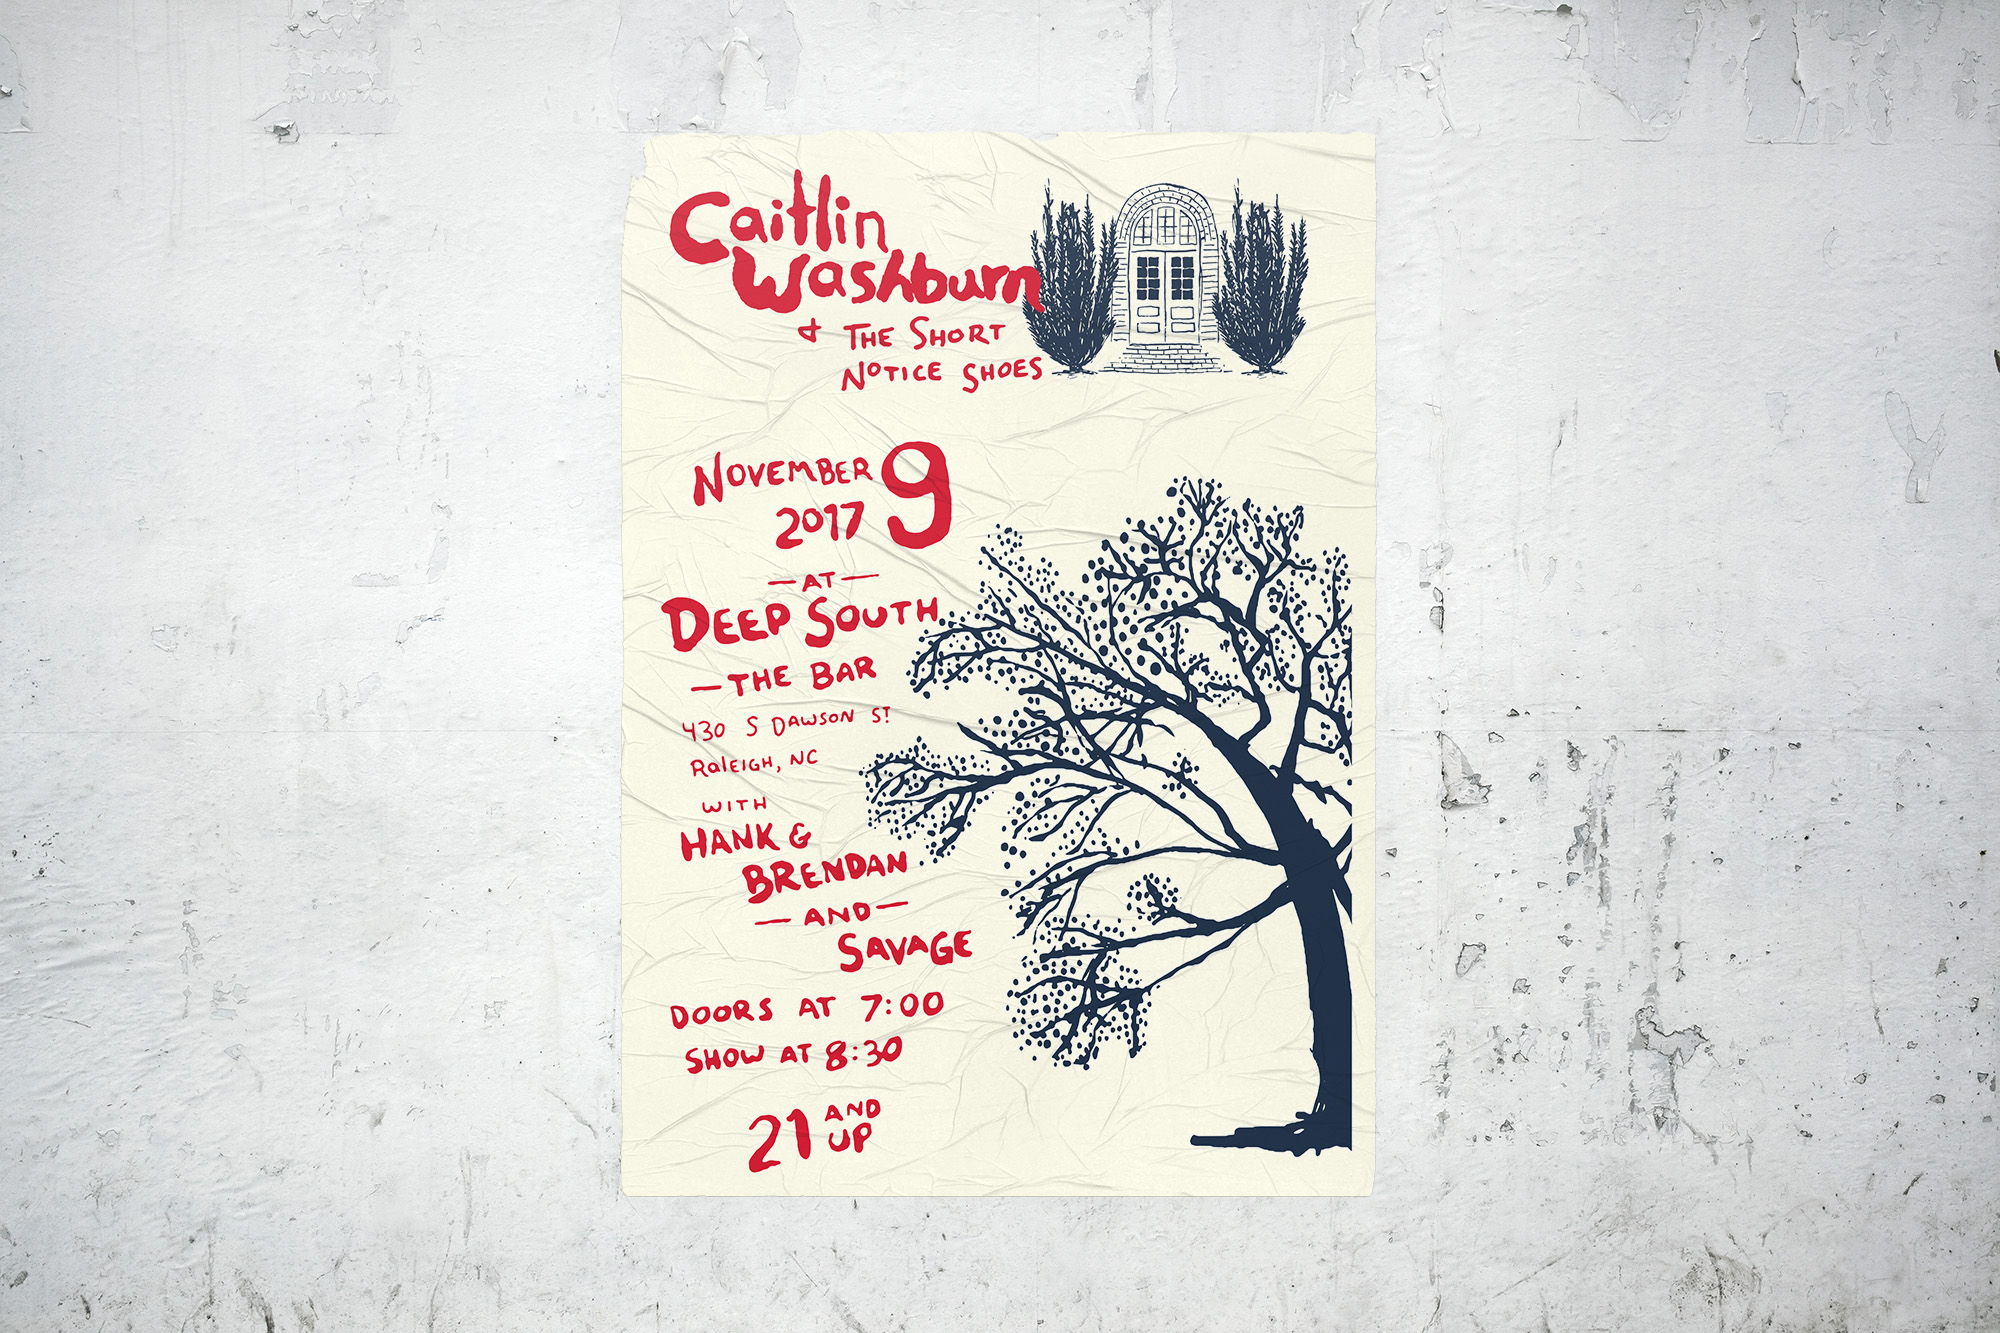 Event poster for Caitlin Washburn